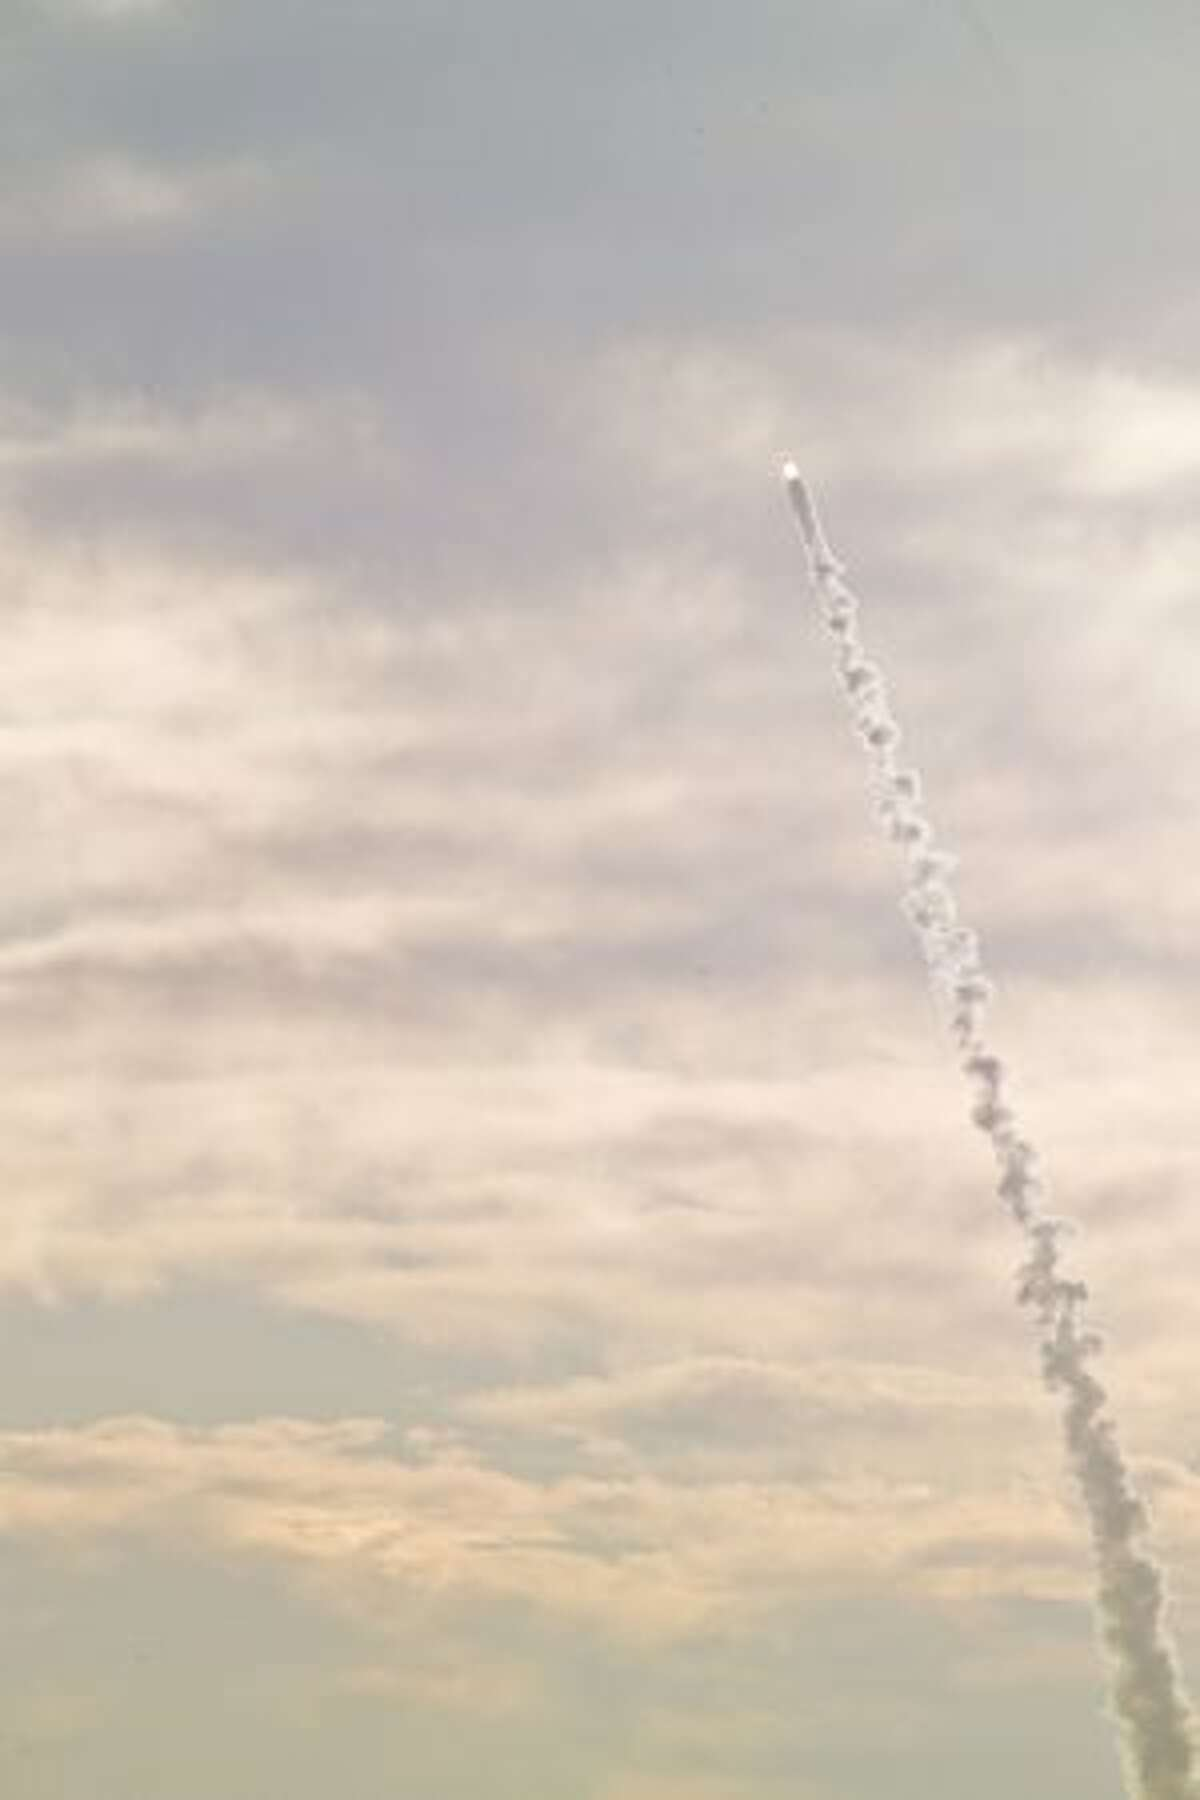 NASA launches its Orion crew module and abort system during a test at White Sands Missile Range, N.M.